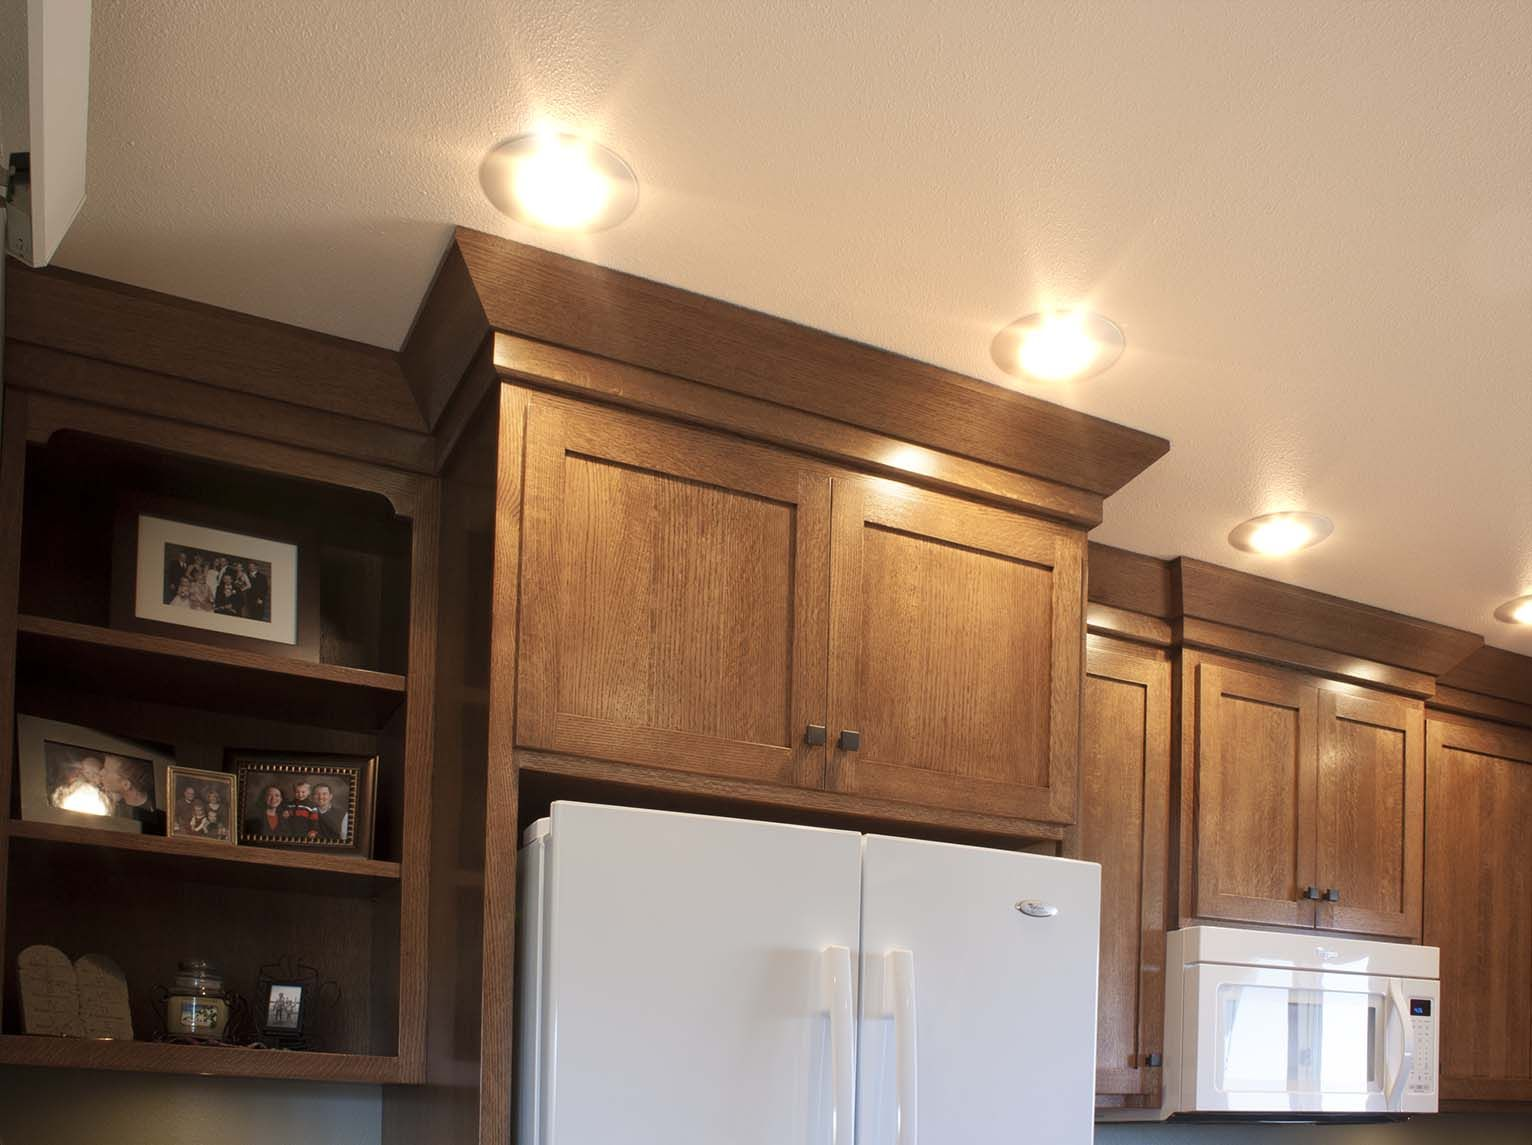 Shaker Crown Molding | Kitchen cabinet crown molding, Crown molding kitchen, Kitchen cabinet molding